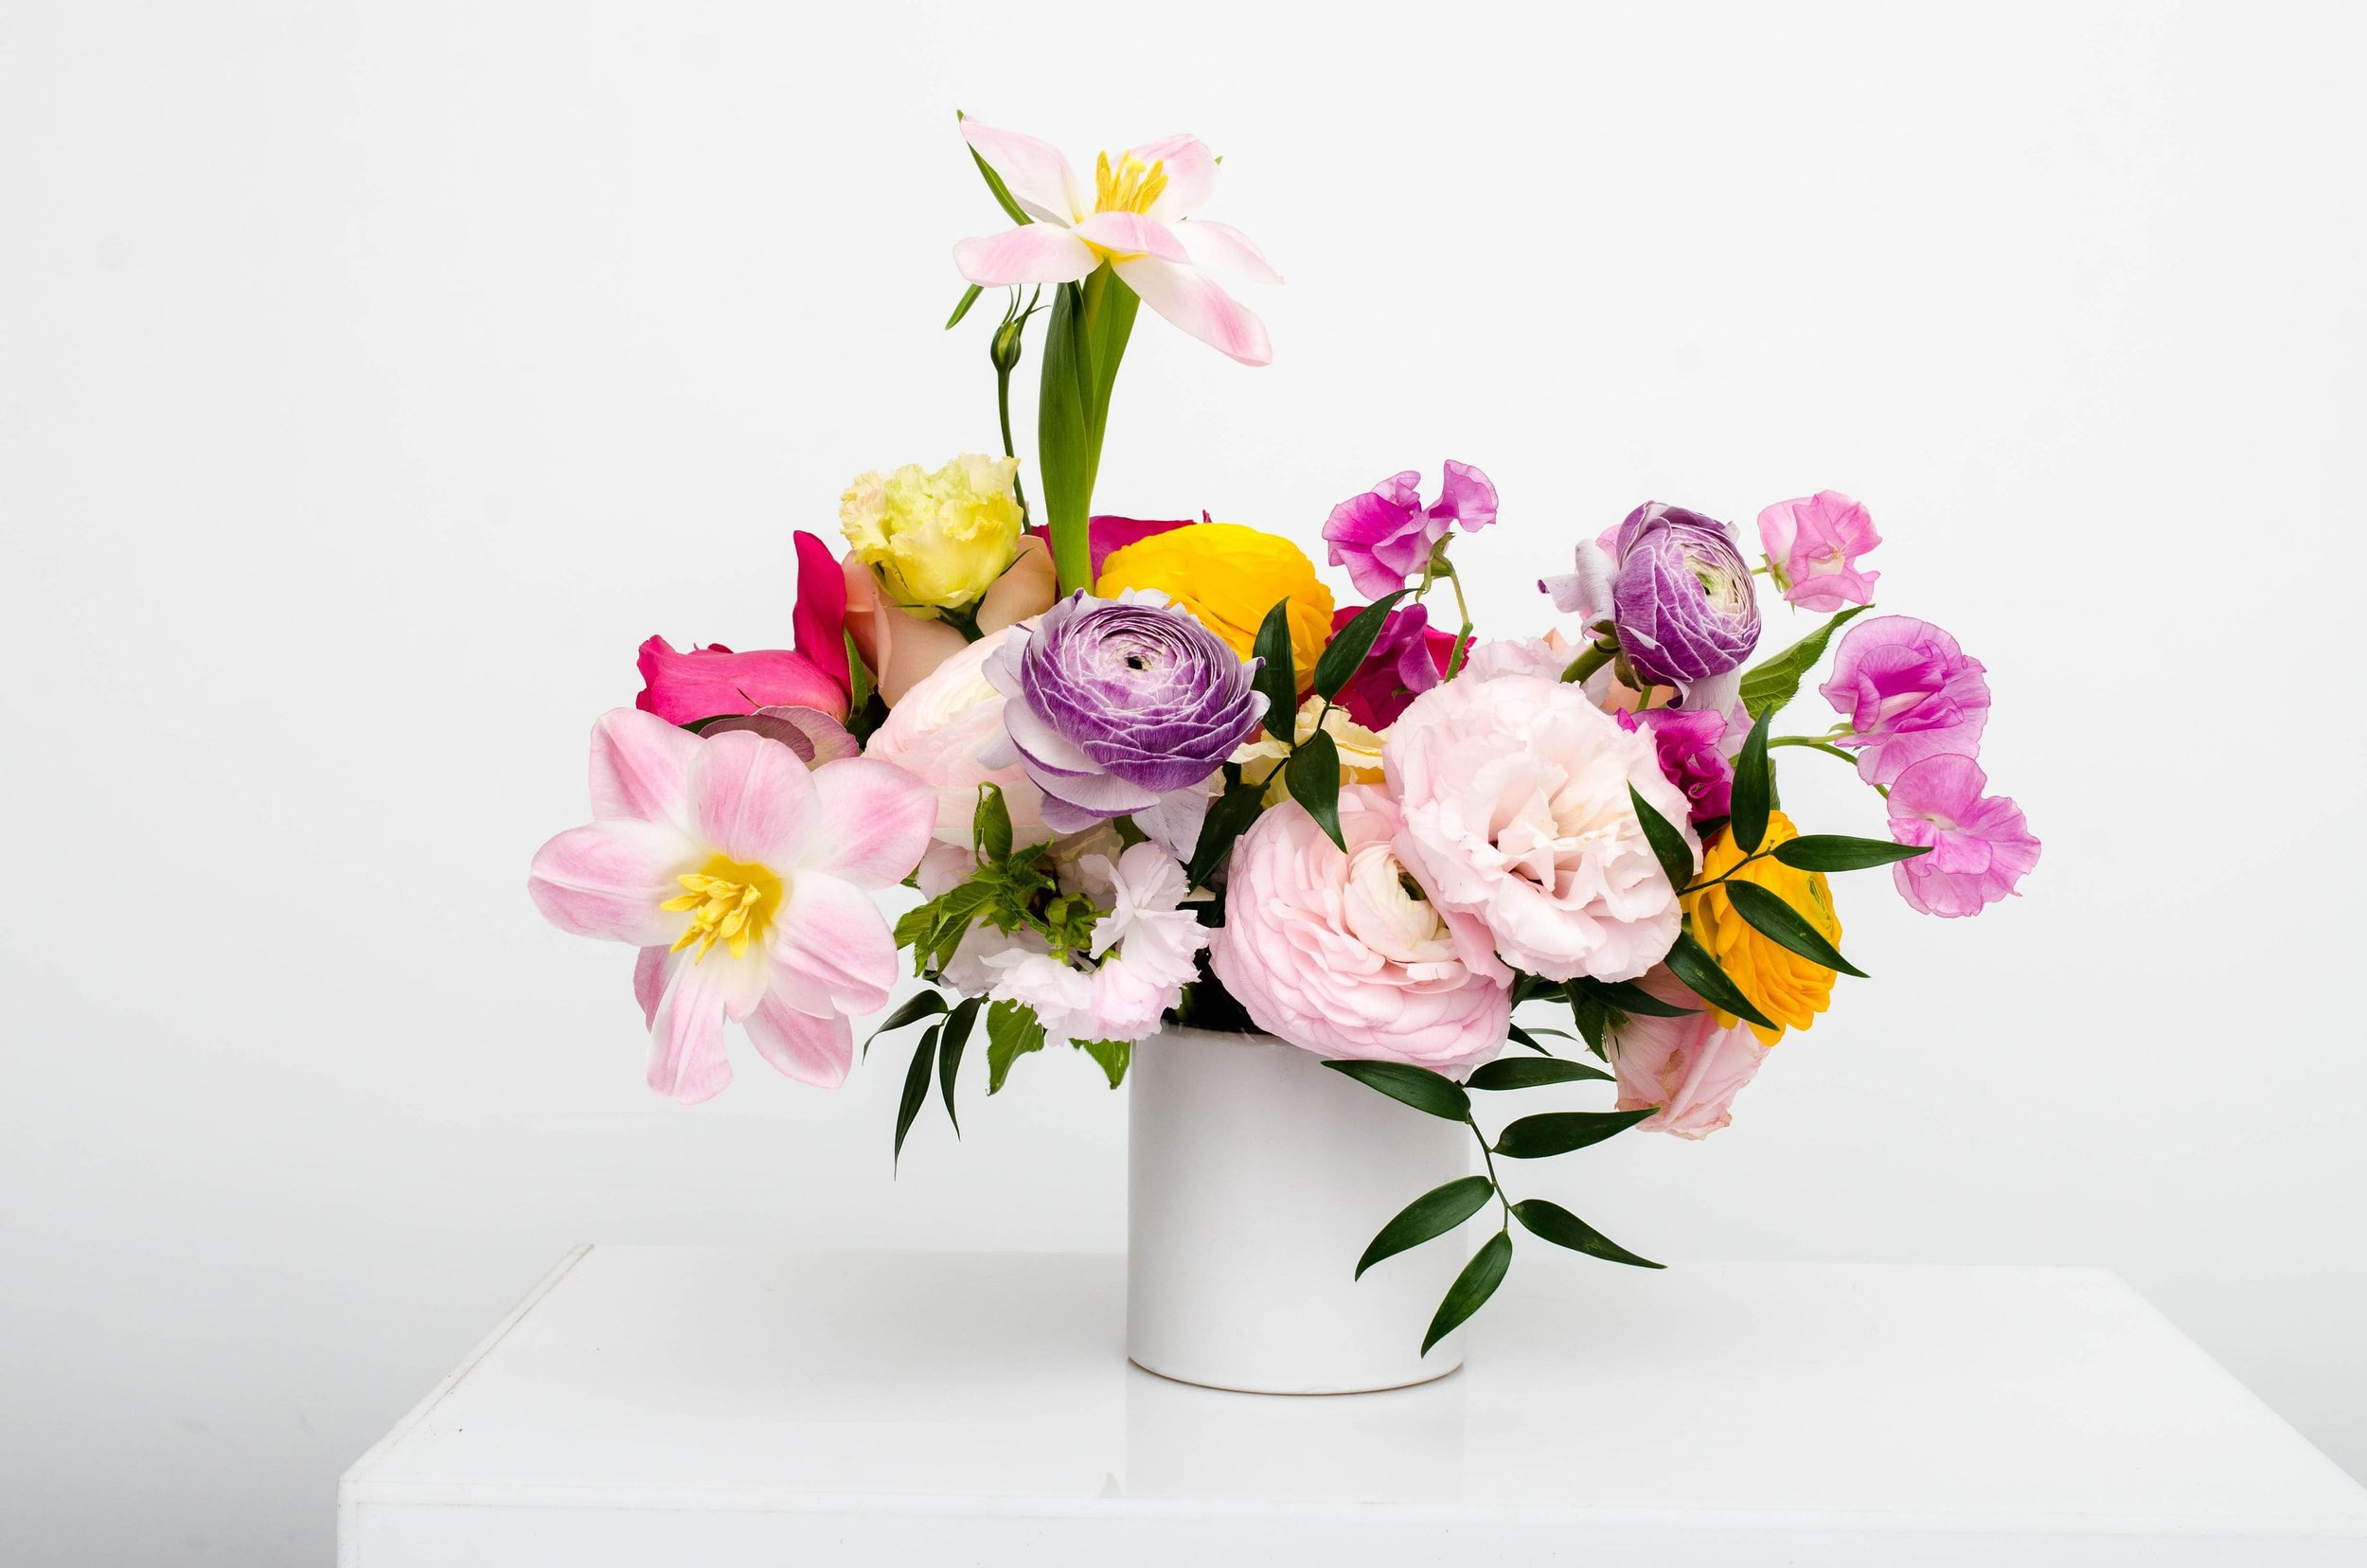 DIY SPRING FLOWER ARRANGEMENT - STEP BY STEP GUIDE - CONTRASTING COLORS - B FLORAL